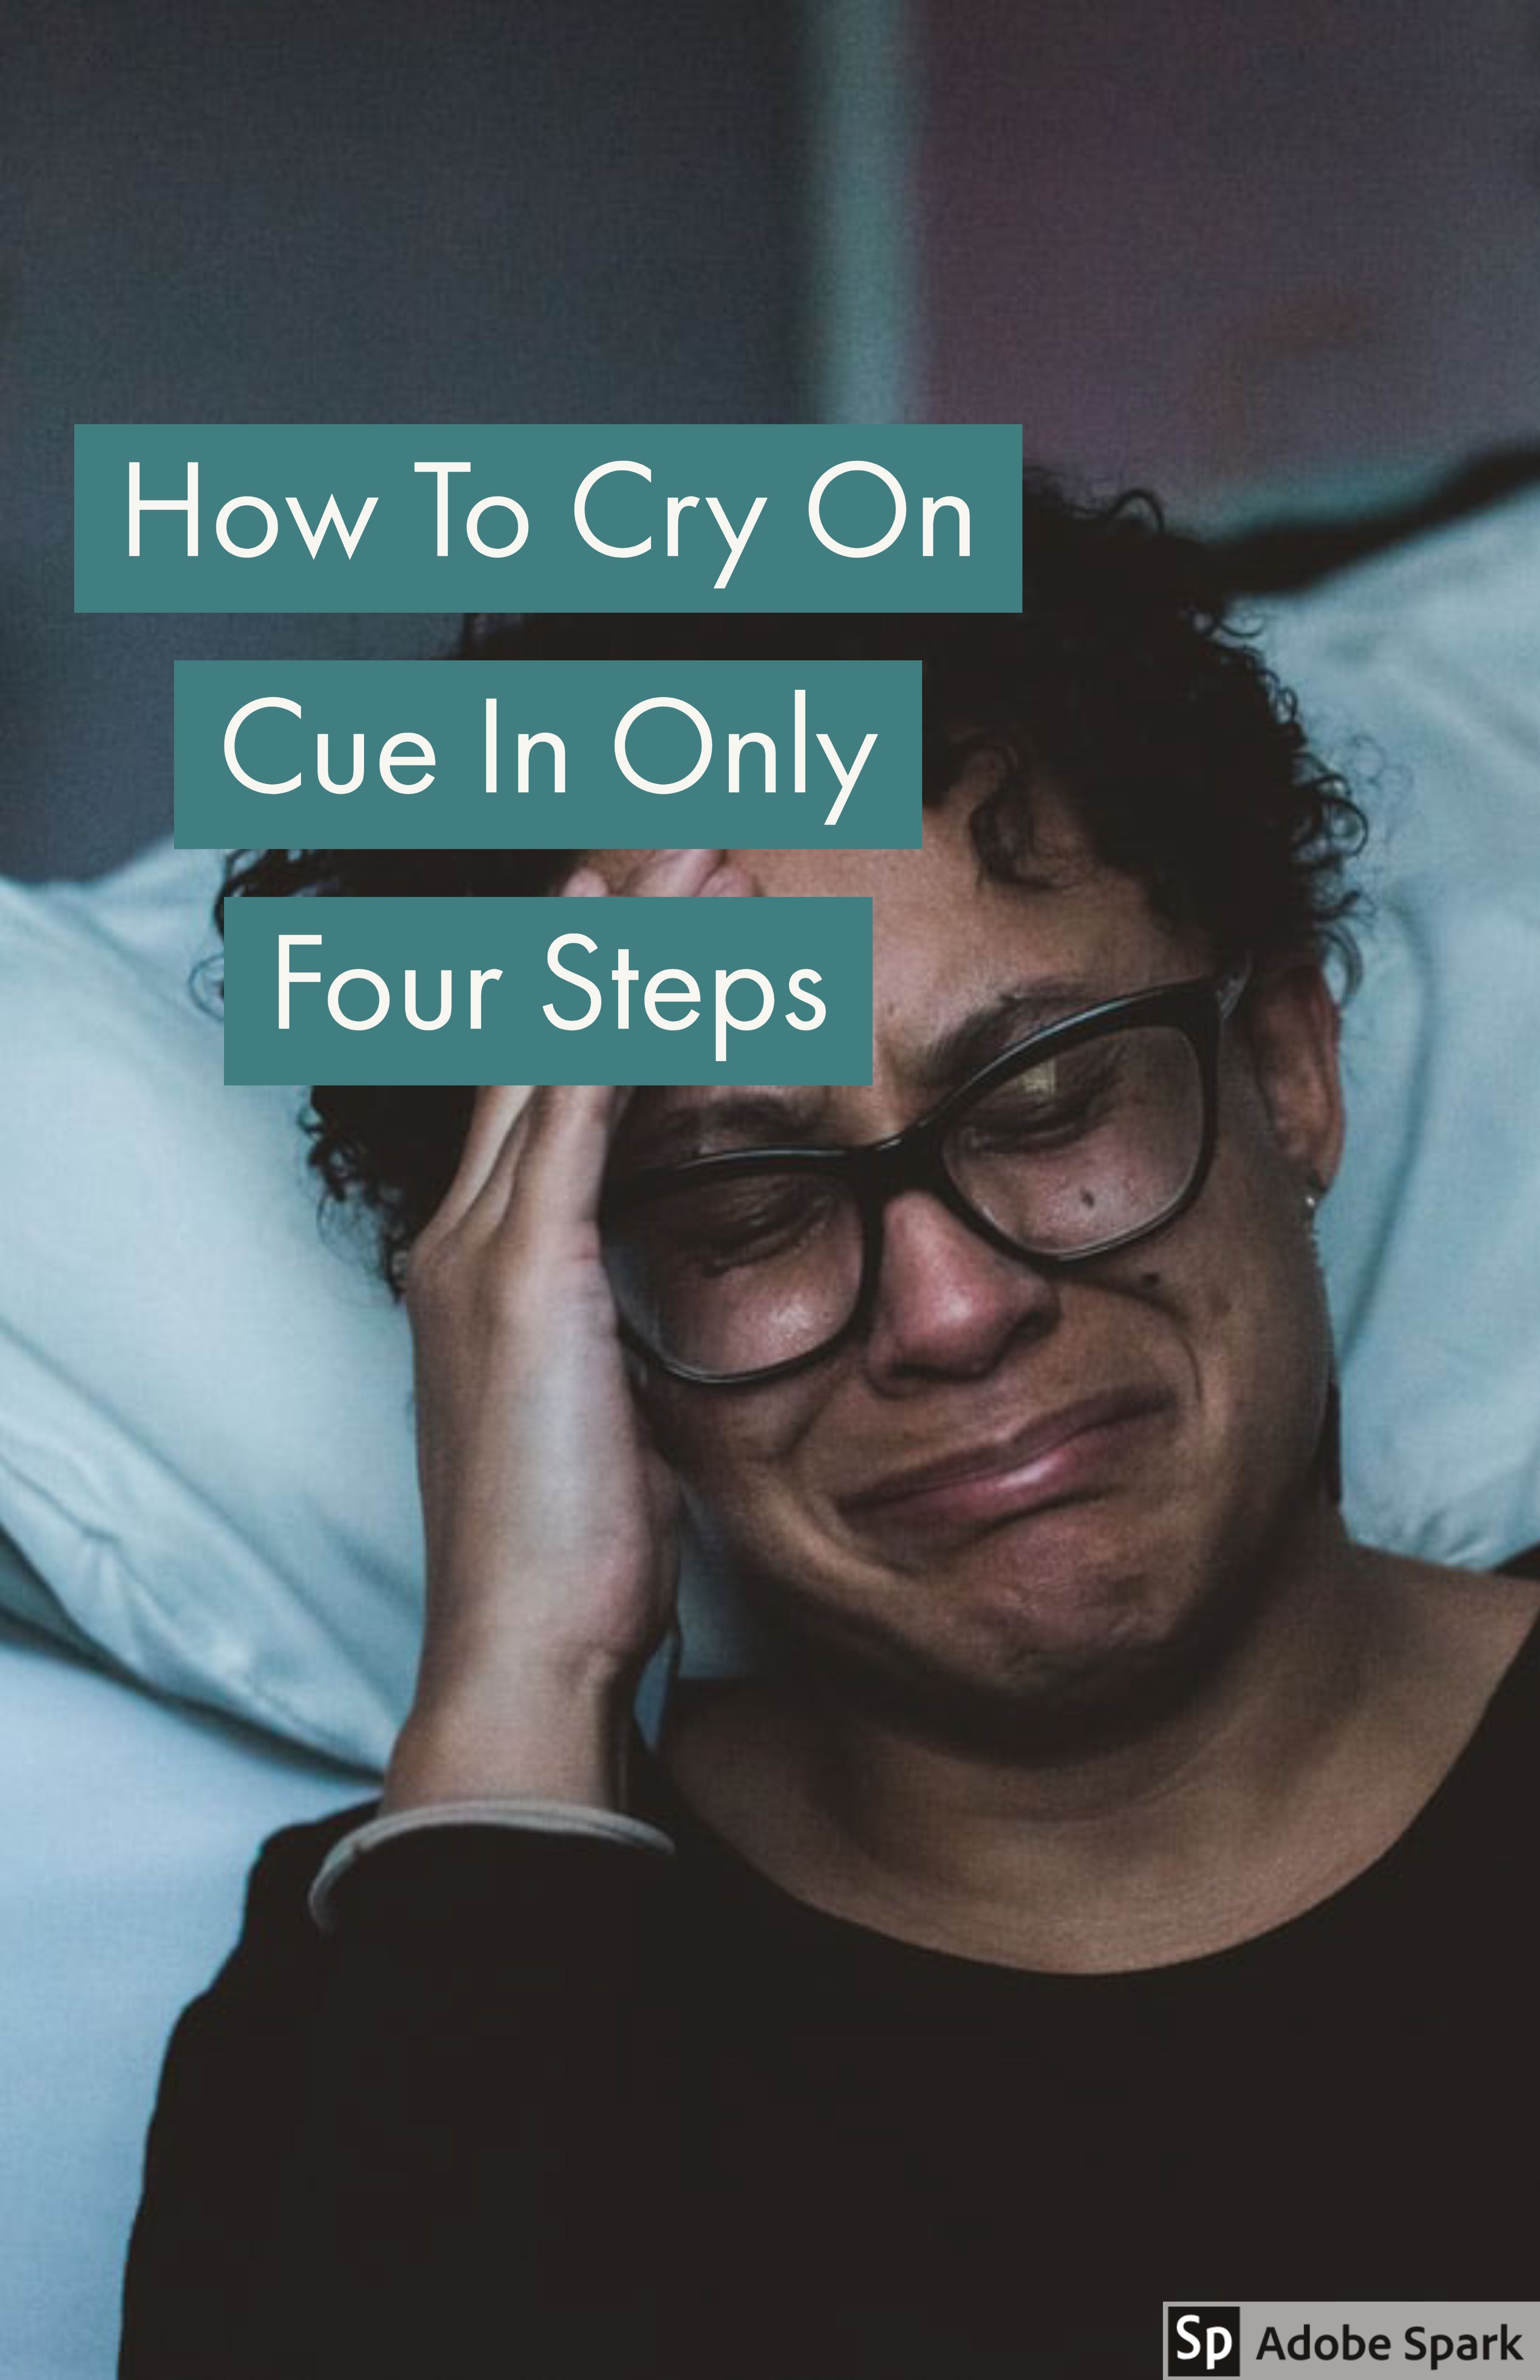 How To Cry On Cue In Only Four Steps